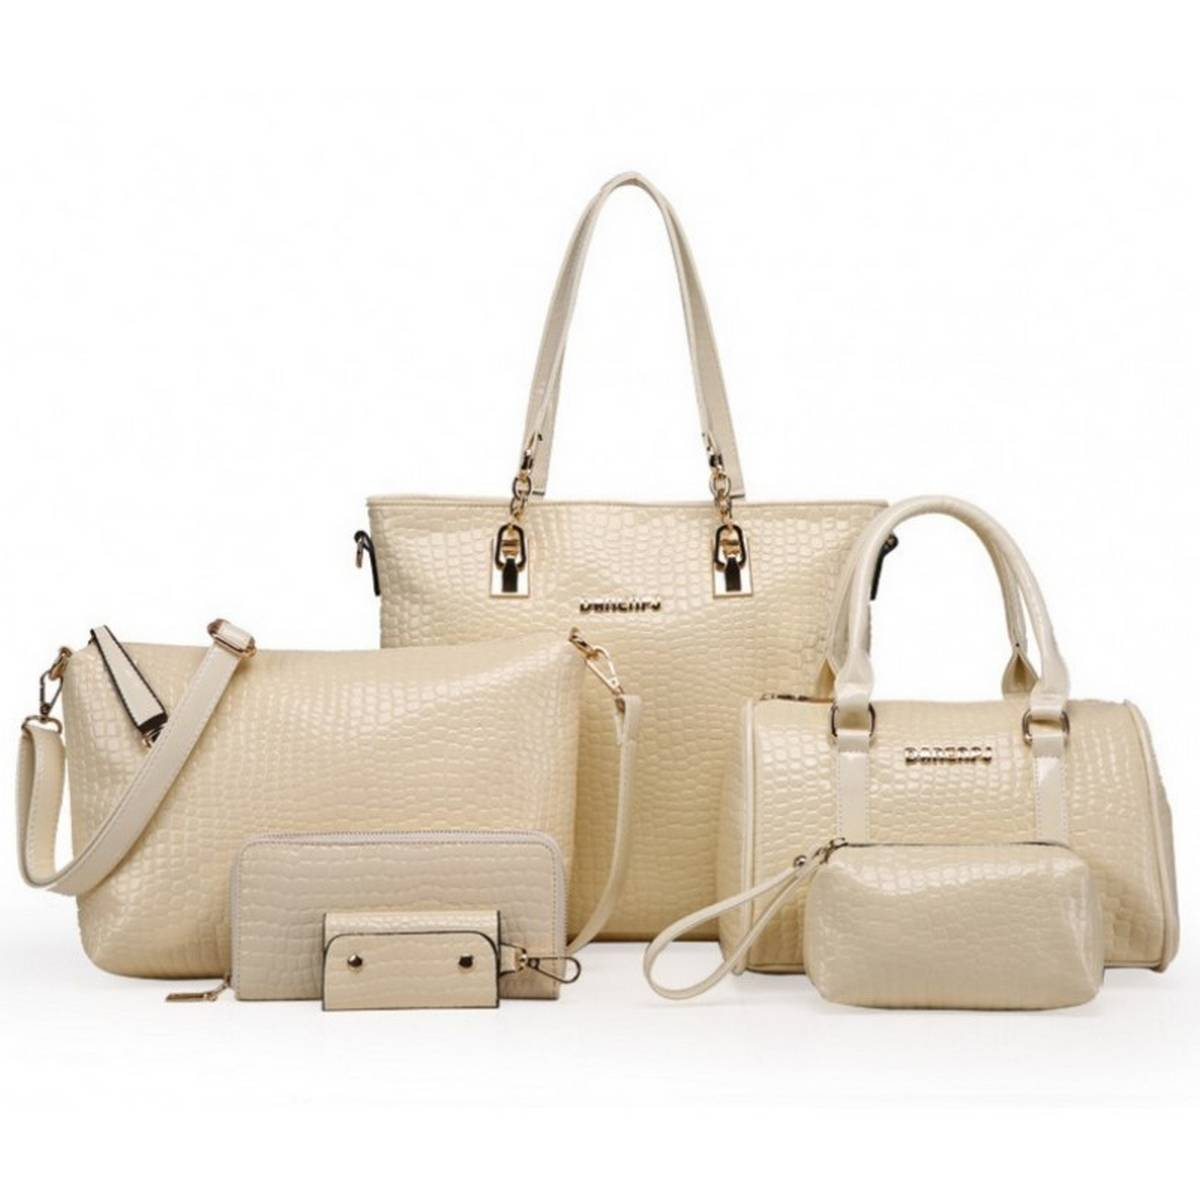 Women's Hand Bags SET Travel Bag Lady's Hanging Bag With Large Chain Crocodile Pattern Shoulder's Bag And Hand Wallet , Purse 6 Pcs.